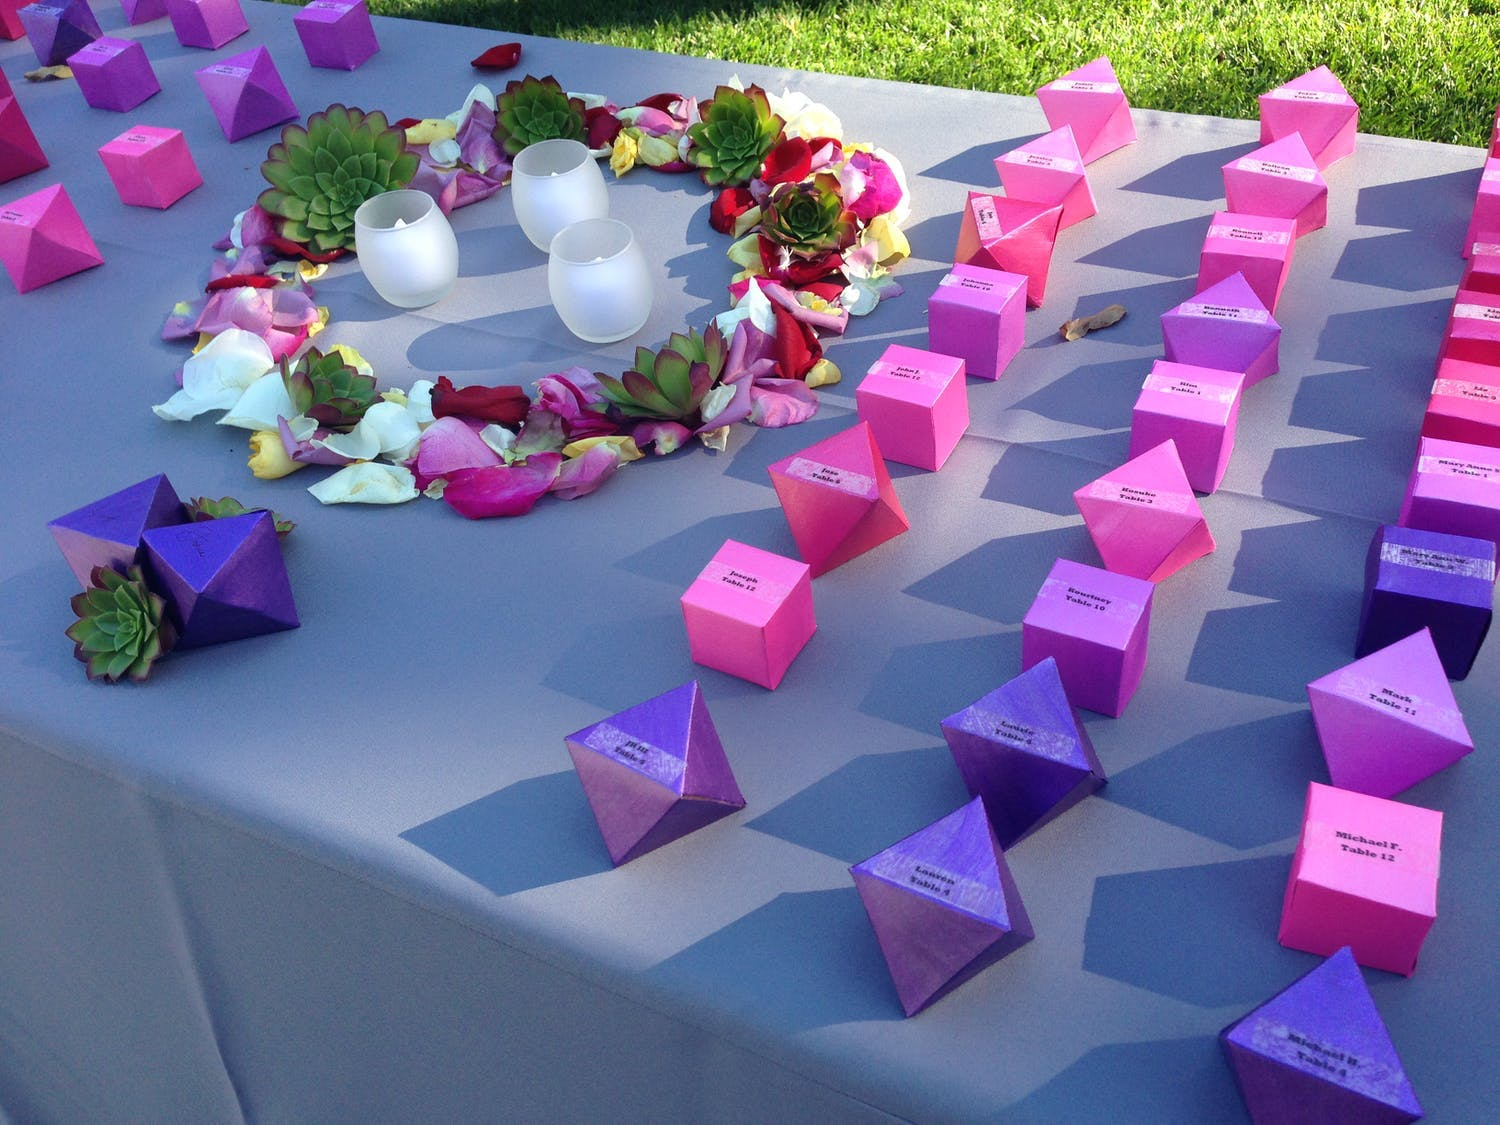 Garden wedding with pink and purple geometric origami wedding escort cards | PartySlate